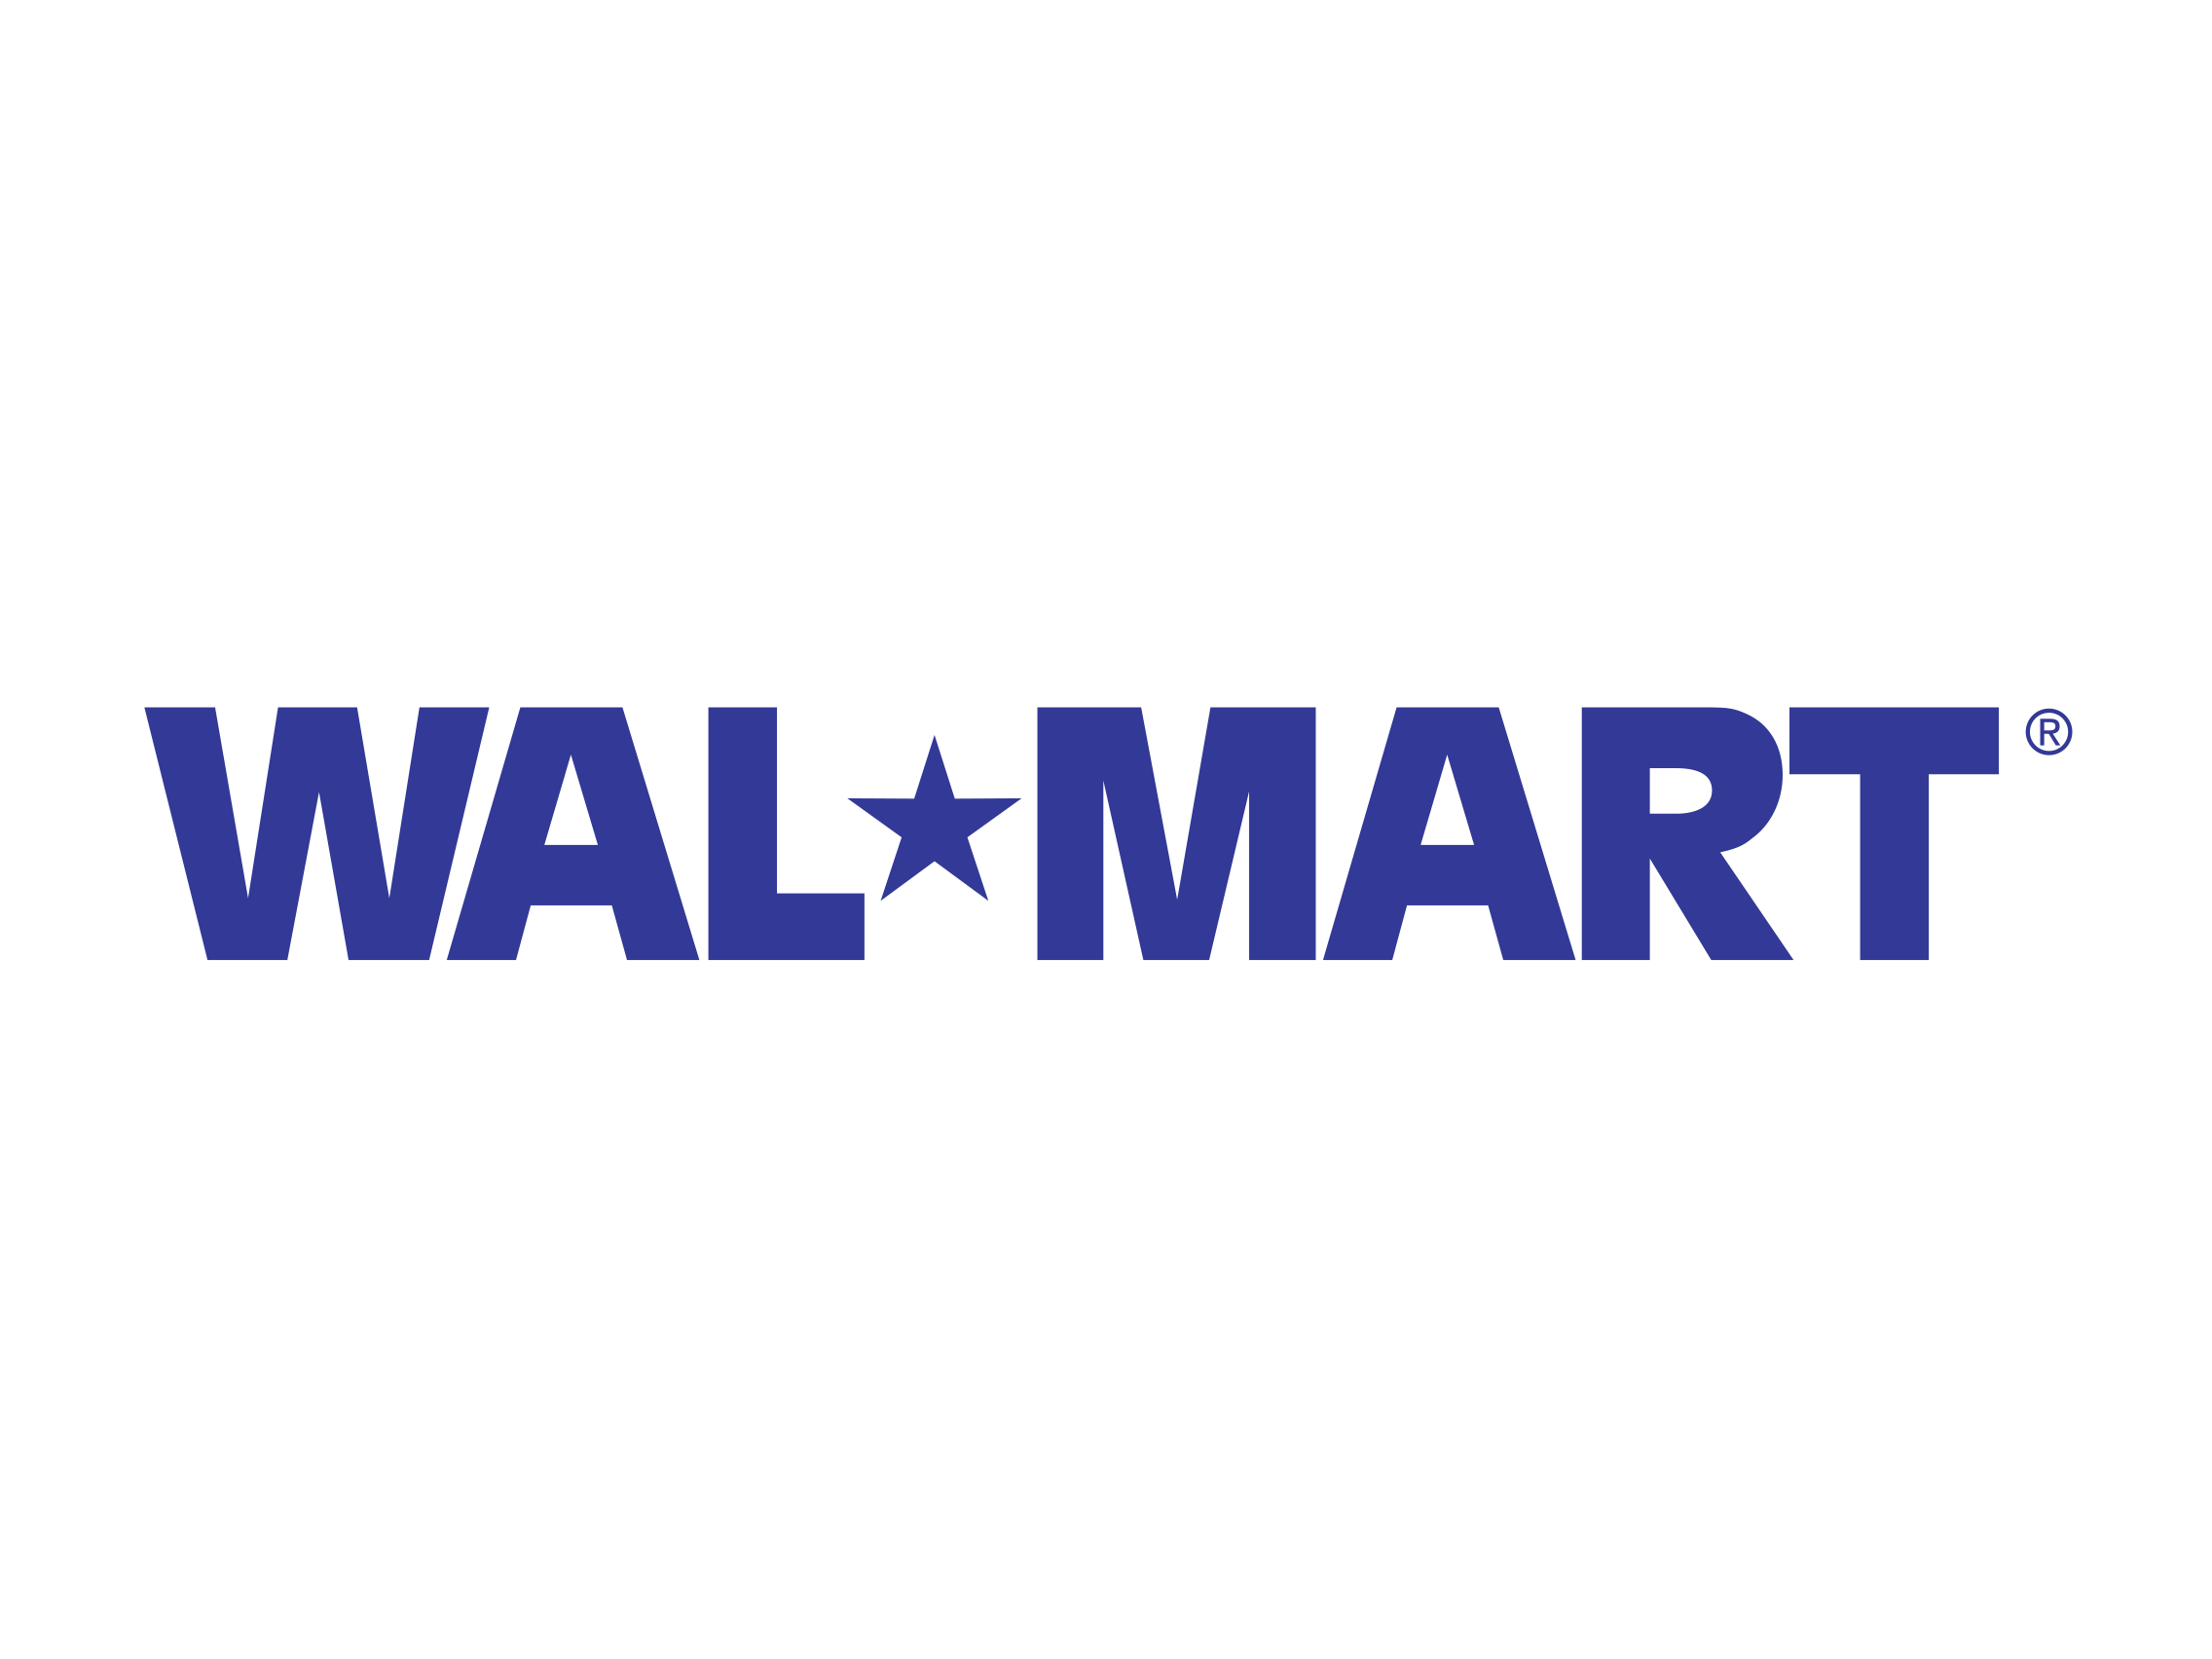 Wal-Mart Logo Wallpaper